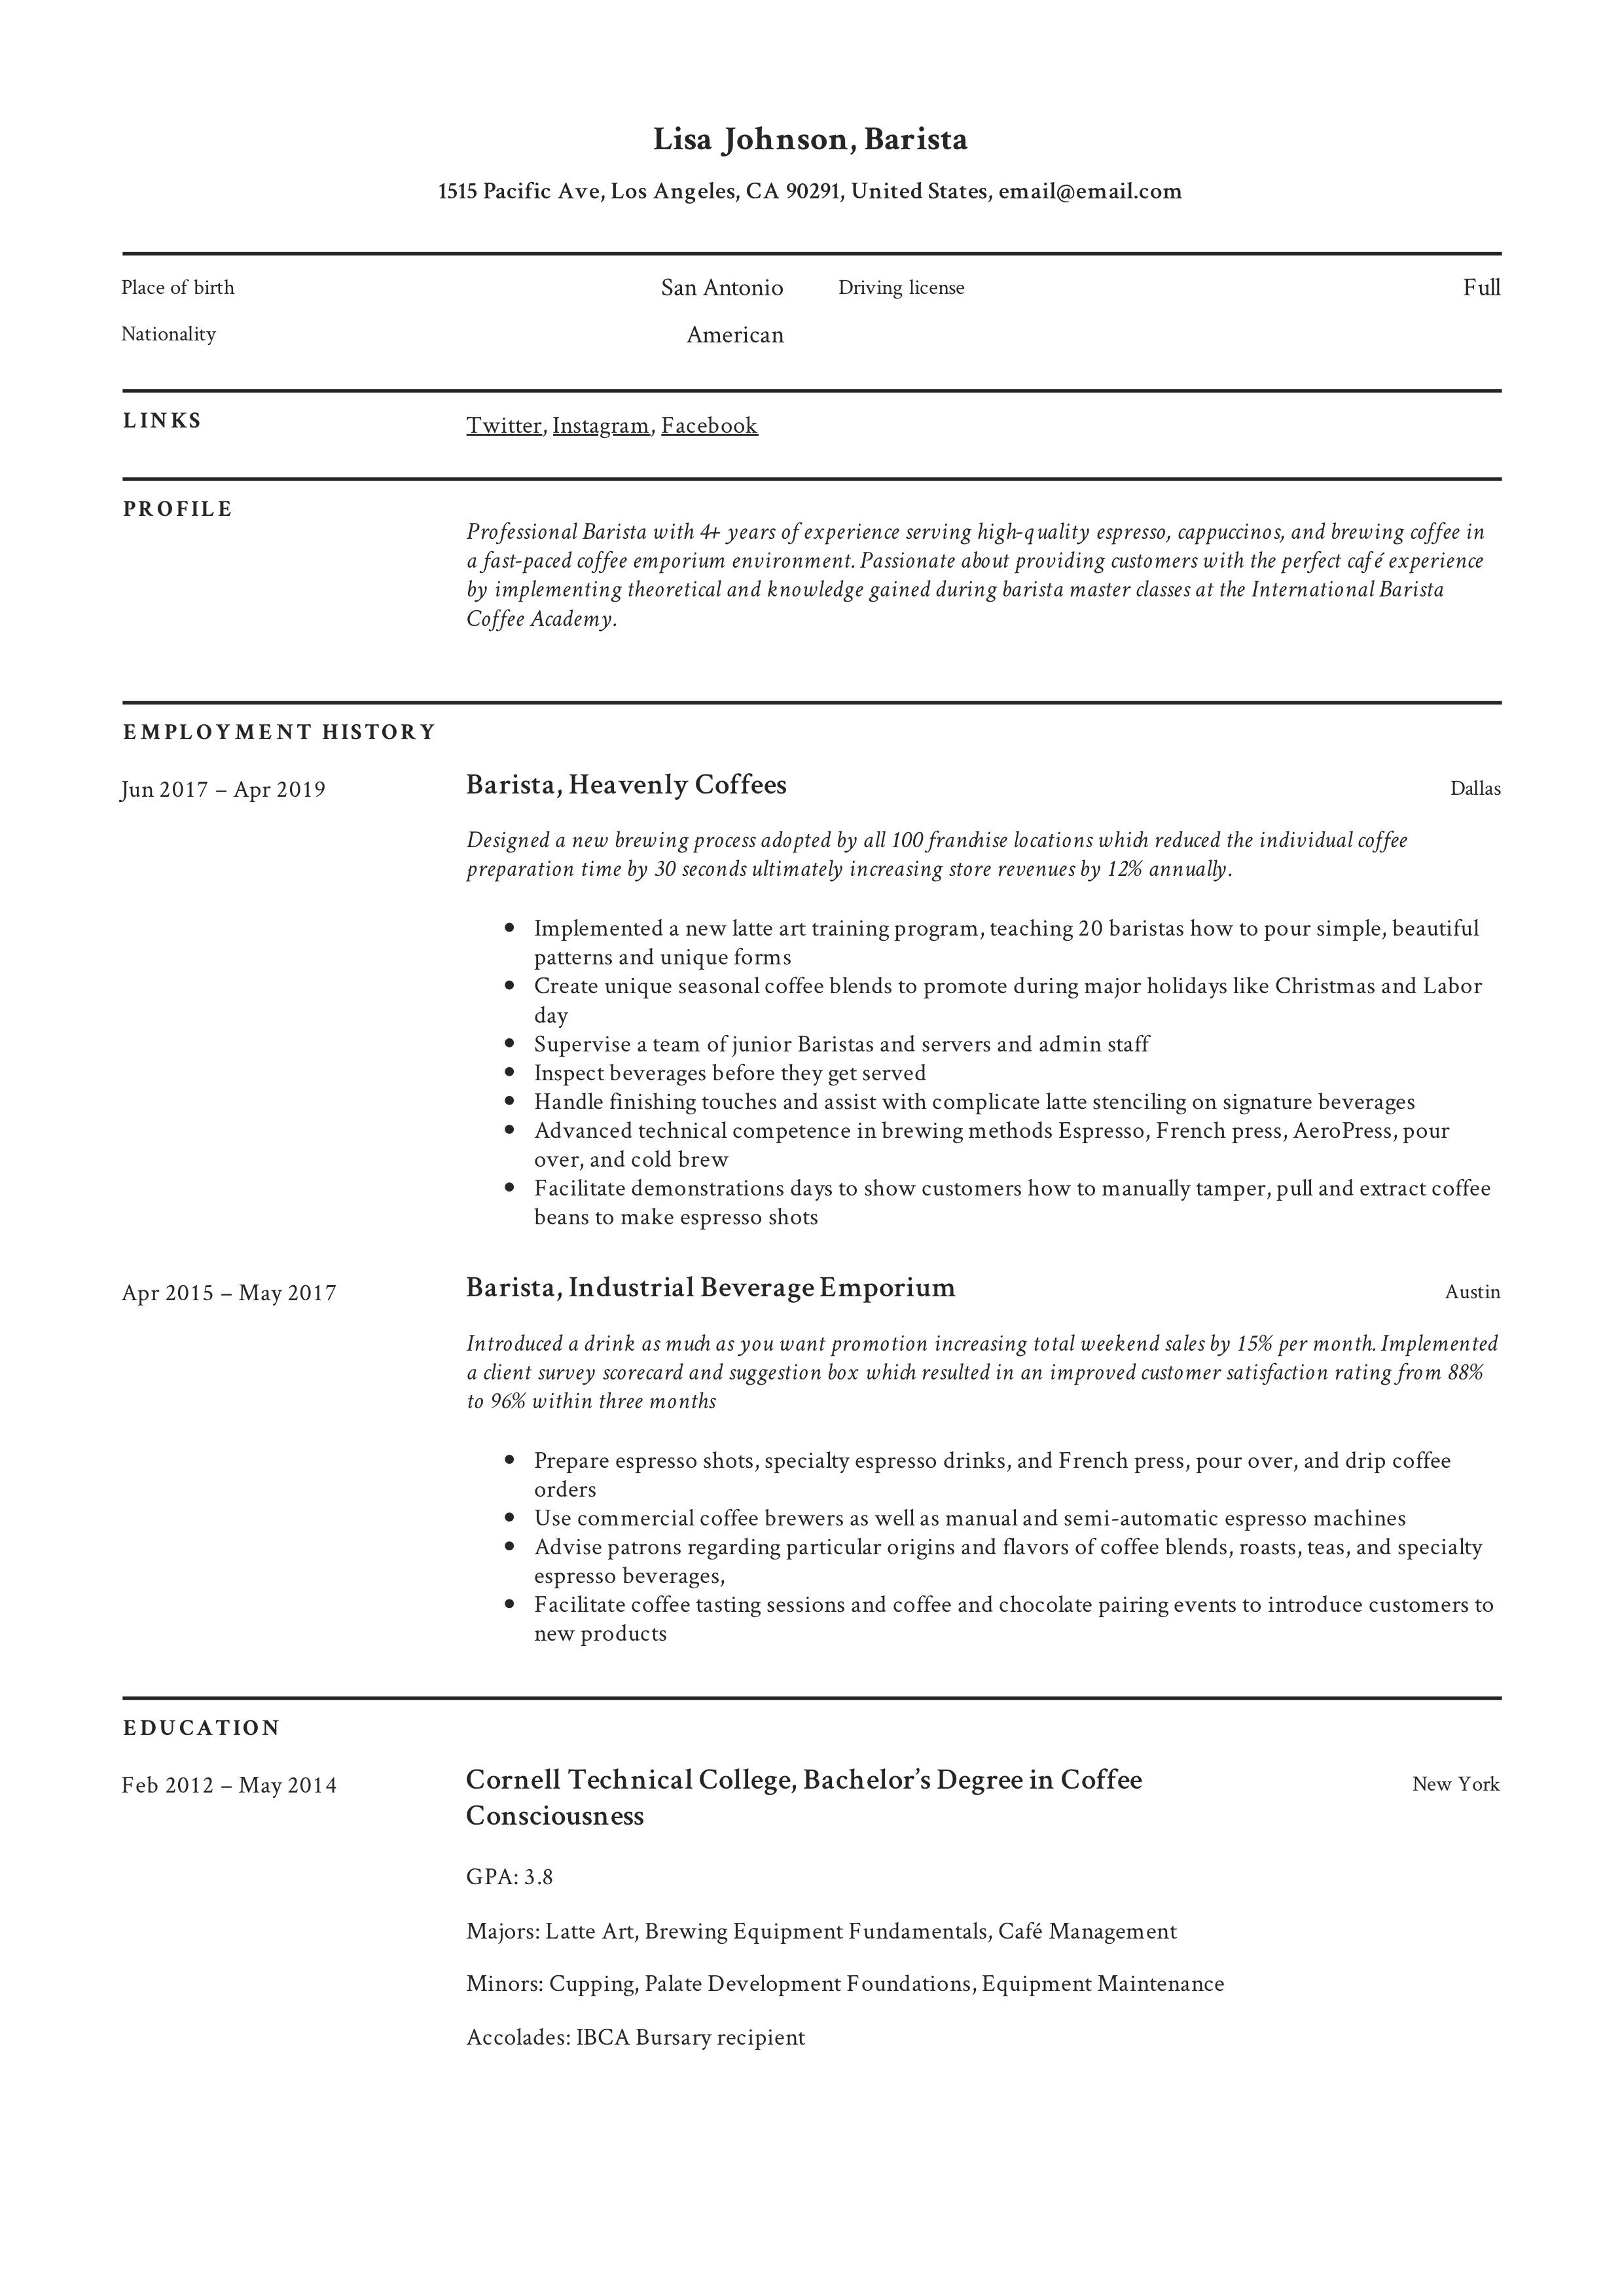 Barista resume writing guide in 2020 barista guided